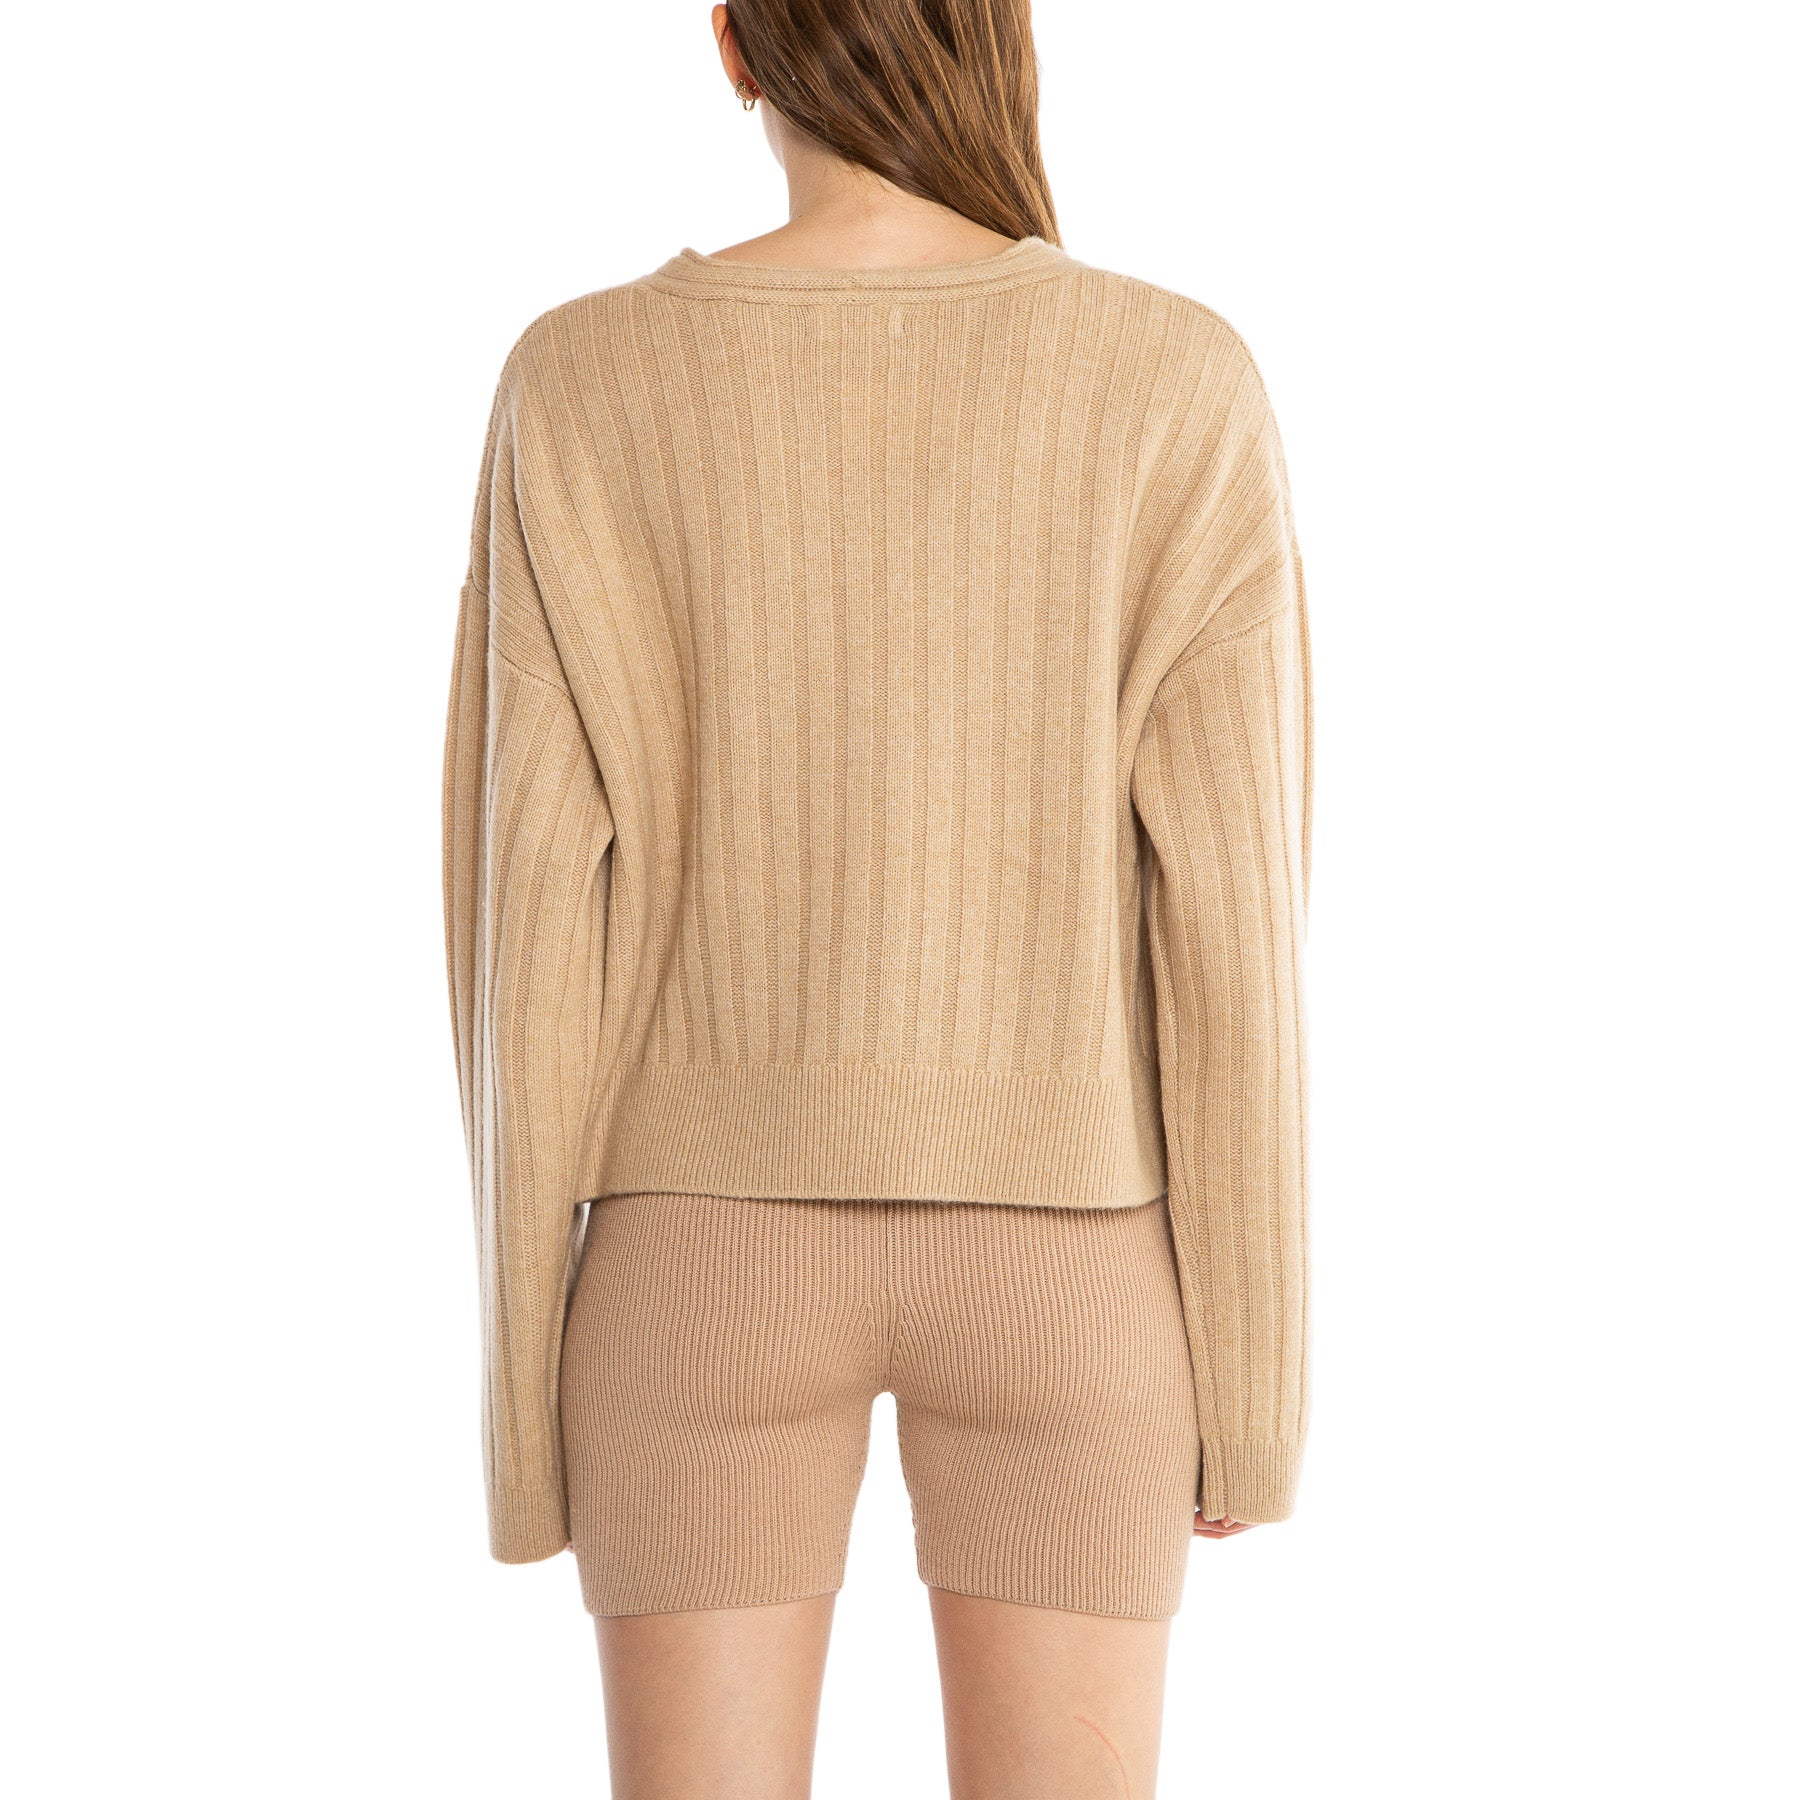 SABLYN | MAIA SWEATER